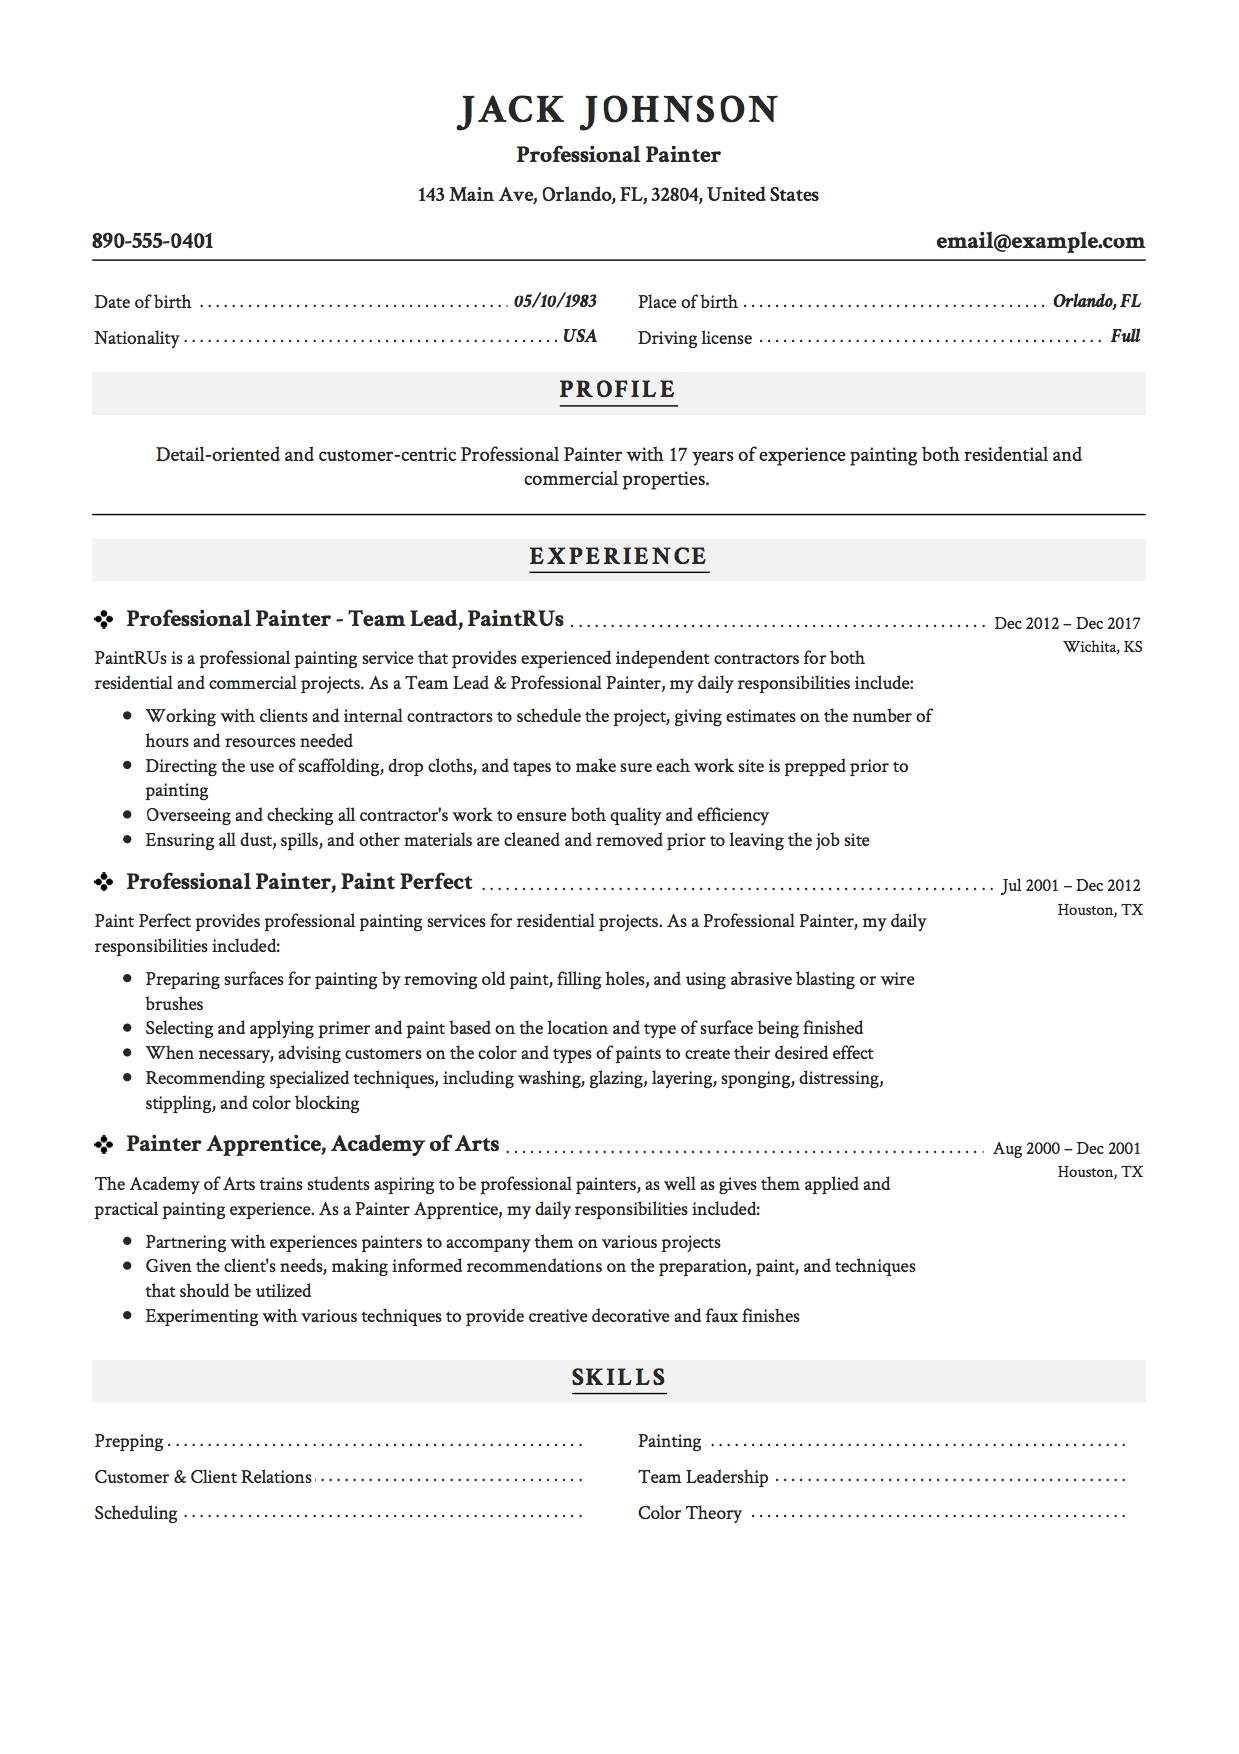 professional painter resume samples